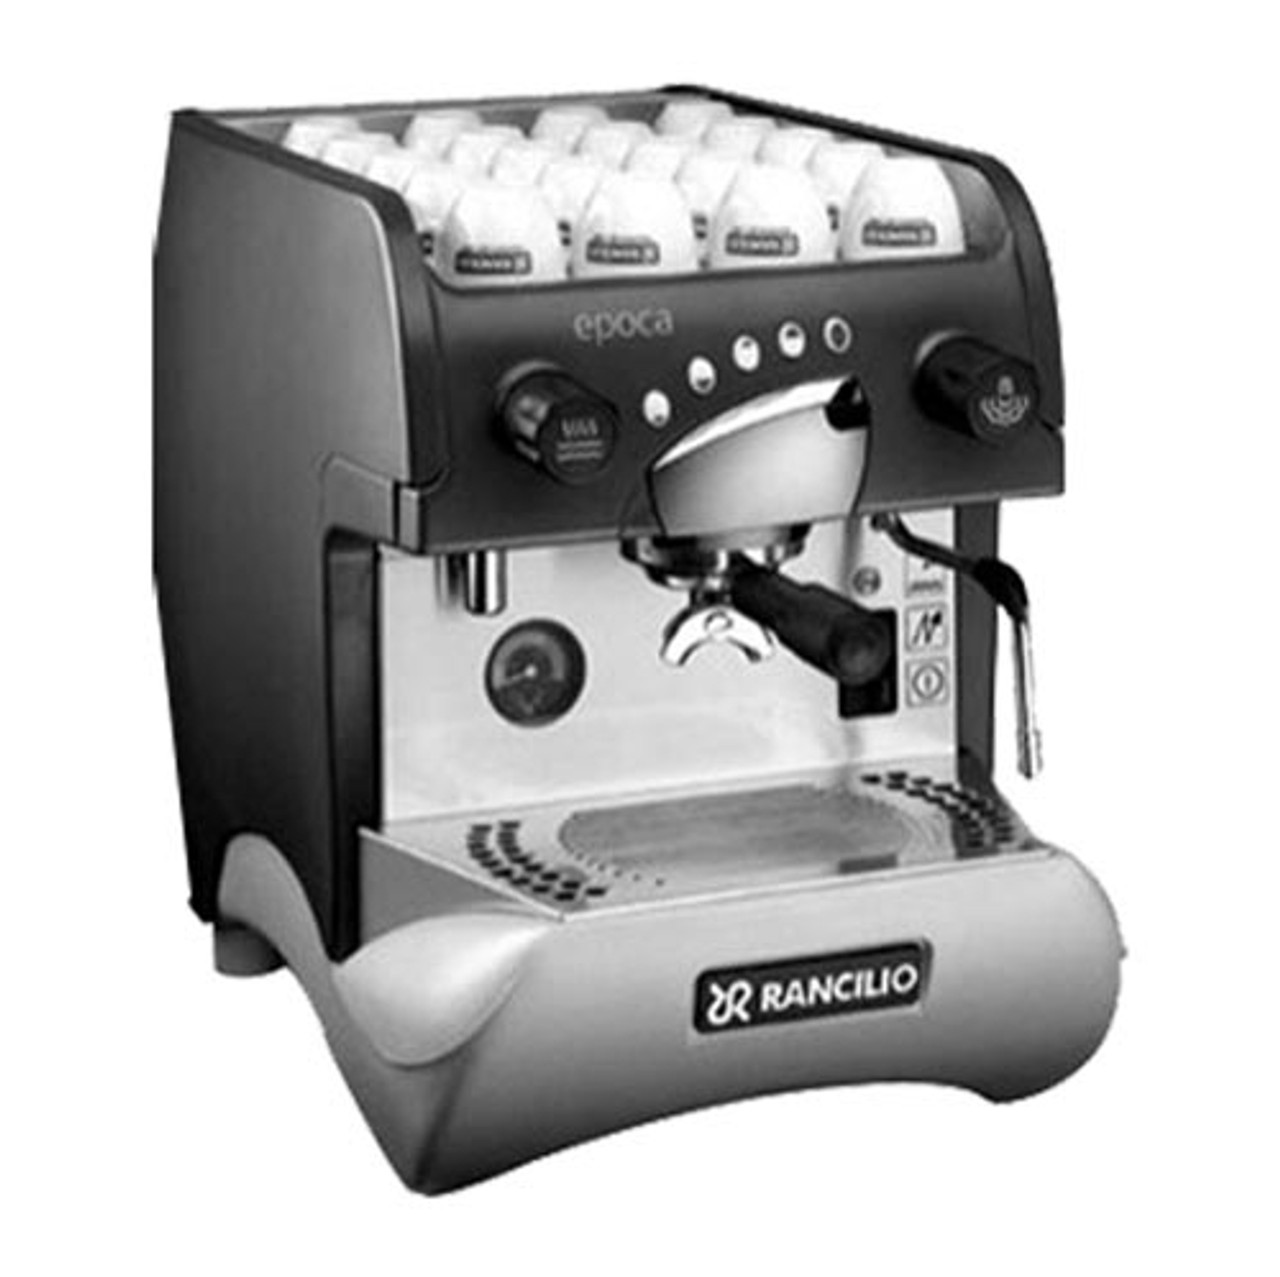 rancilio coffee maker instructions